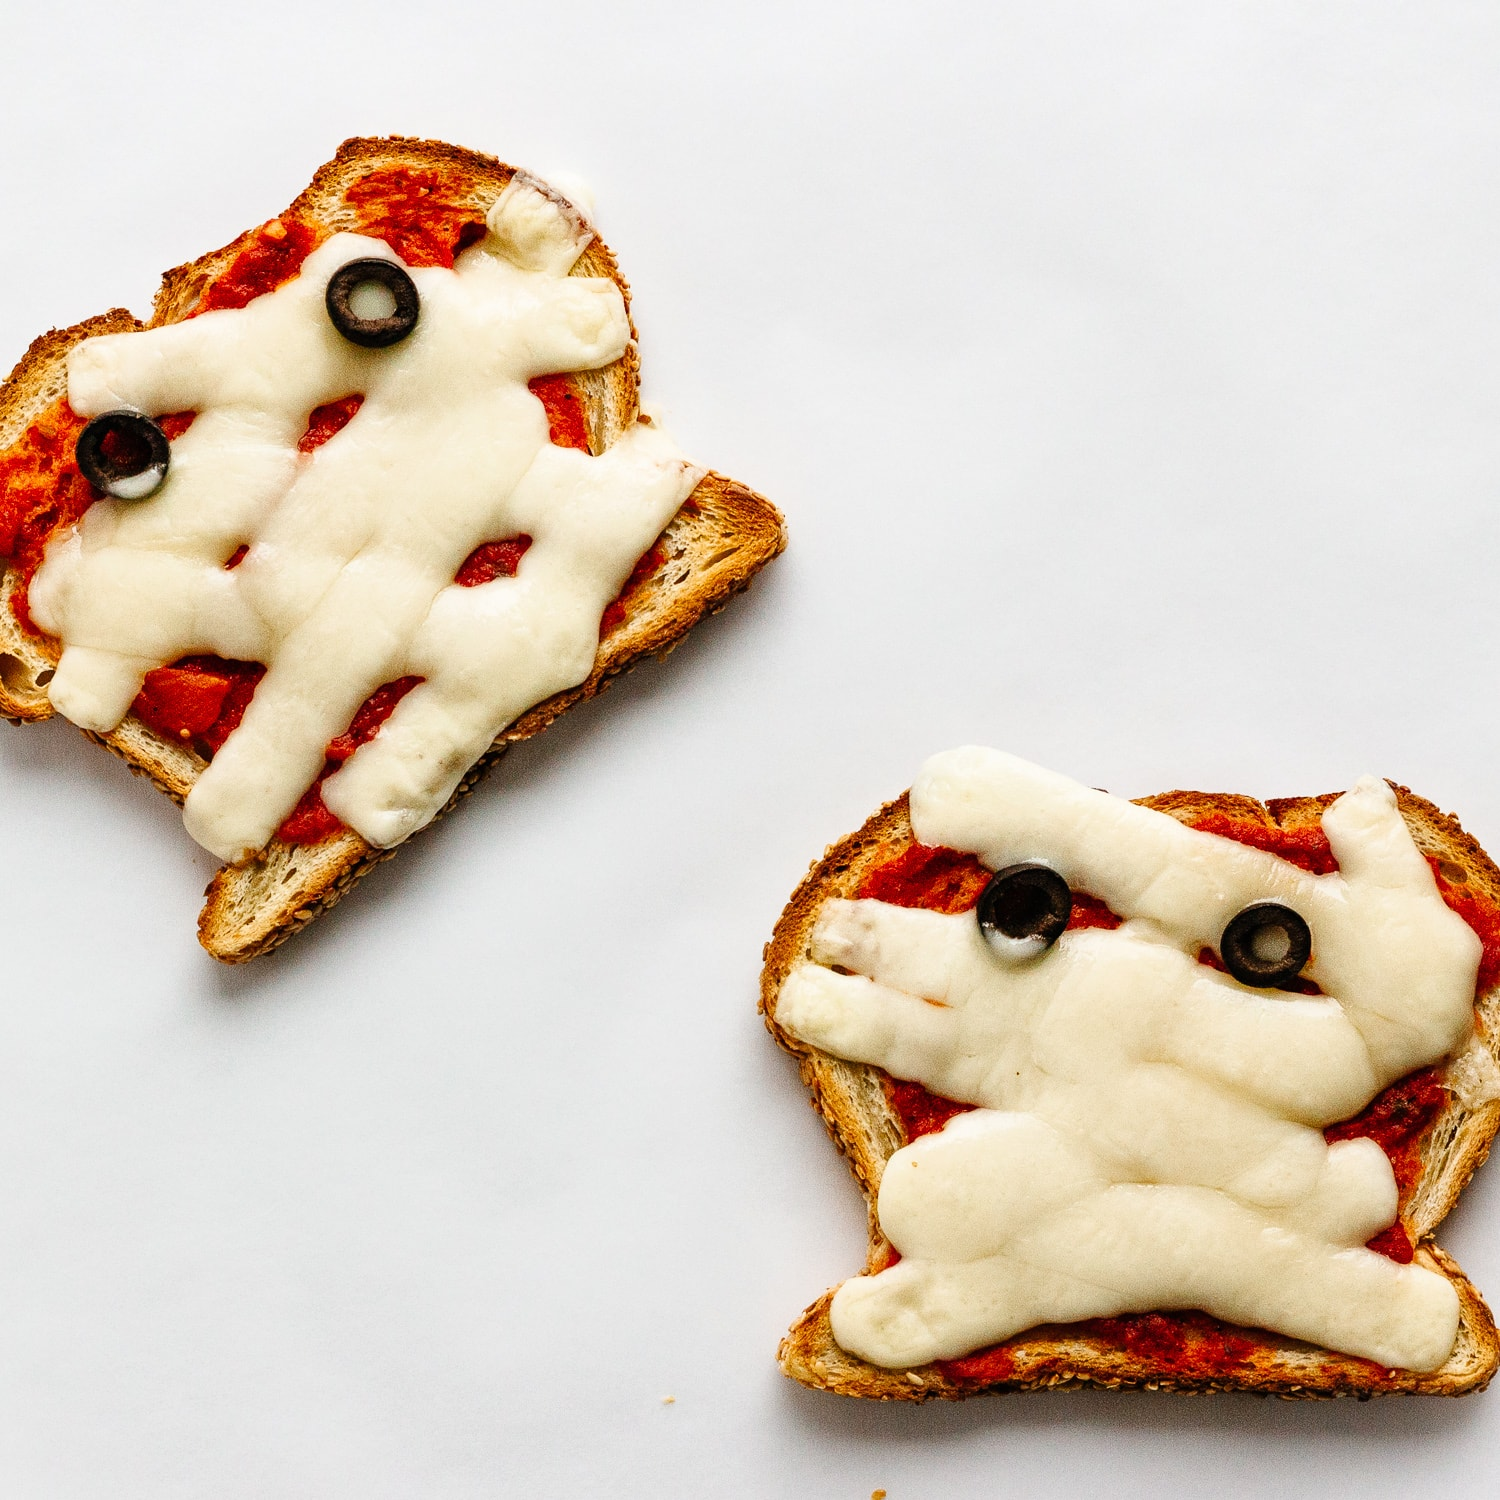 Pizza toast with strips of mozzarella and 2 black olive slices to look like a Halloween Mummy